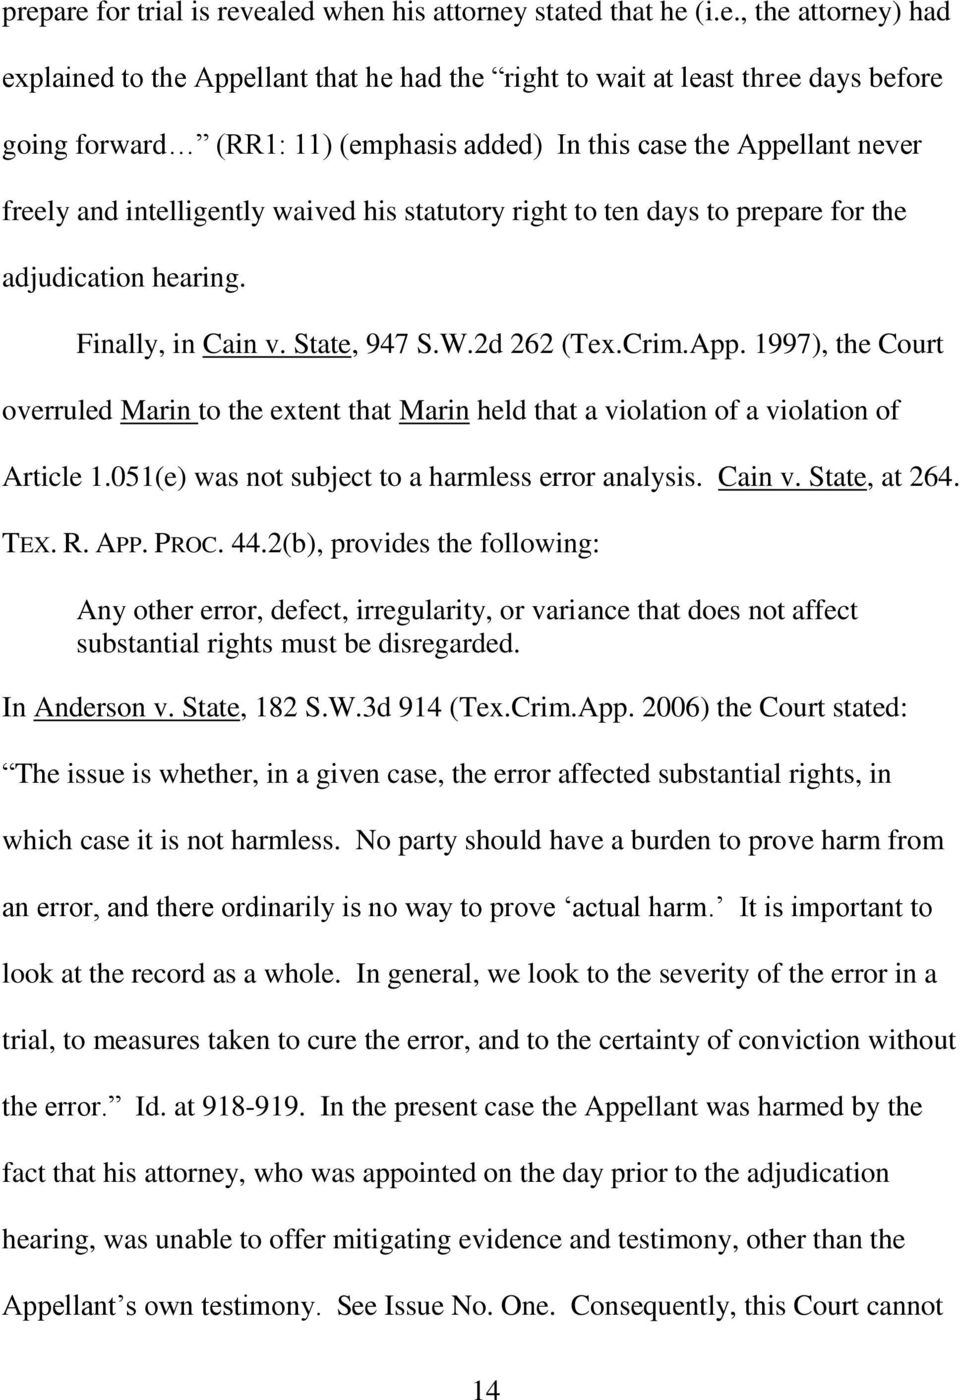 2d 262 (Tex.Crim.App. 1997), the Court overruled Marin to the extent that Marin held that a violation of a violation of Article 1.051(e) was not subject to a harmless error analysis. Cain v.